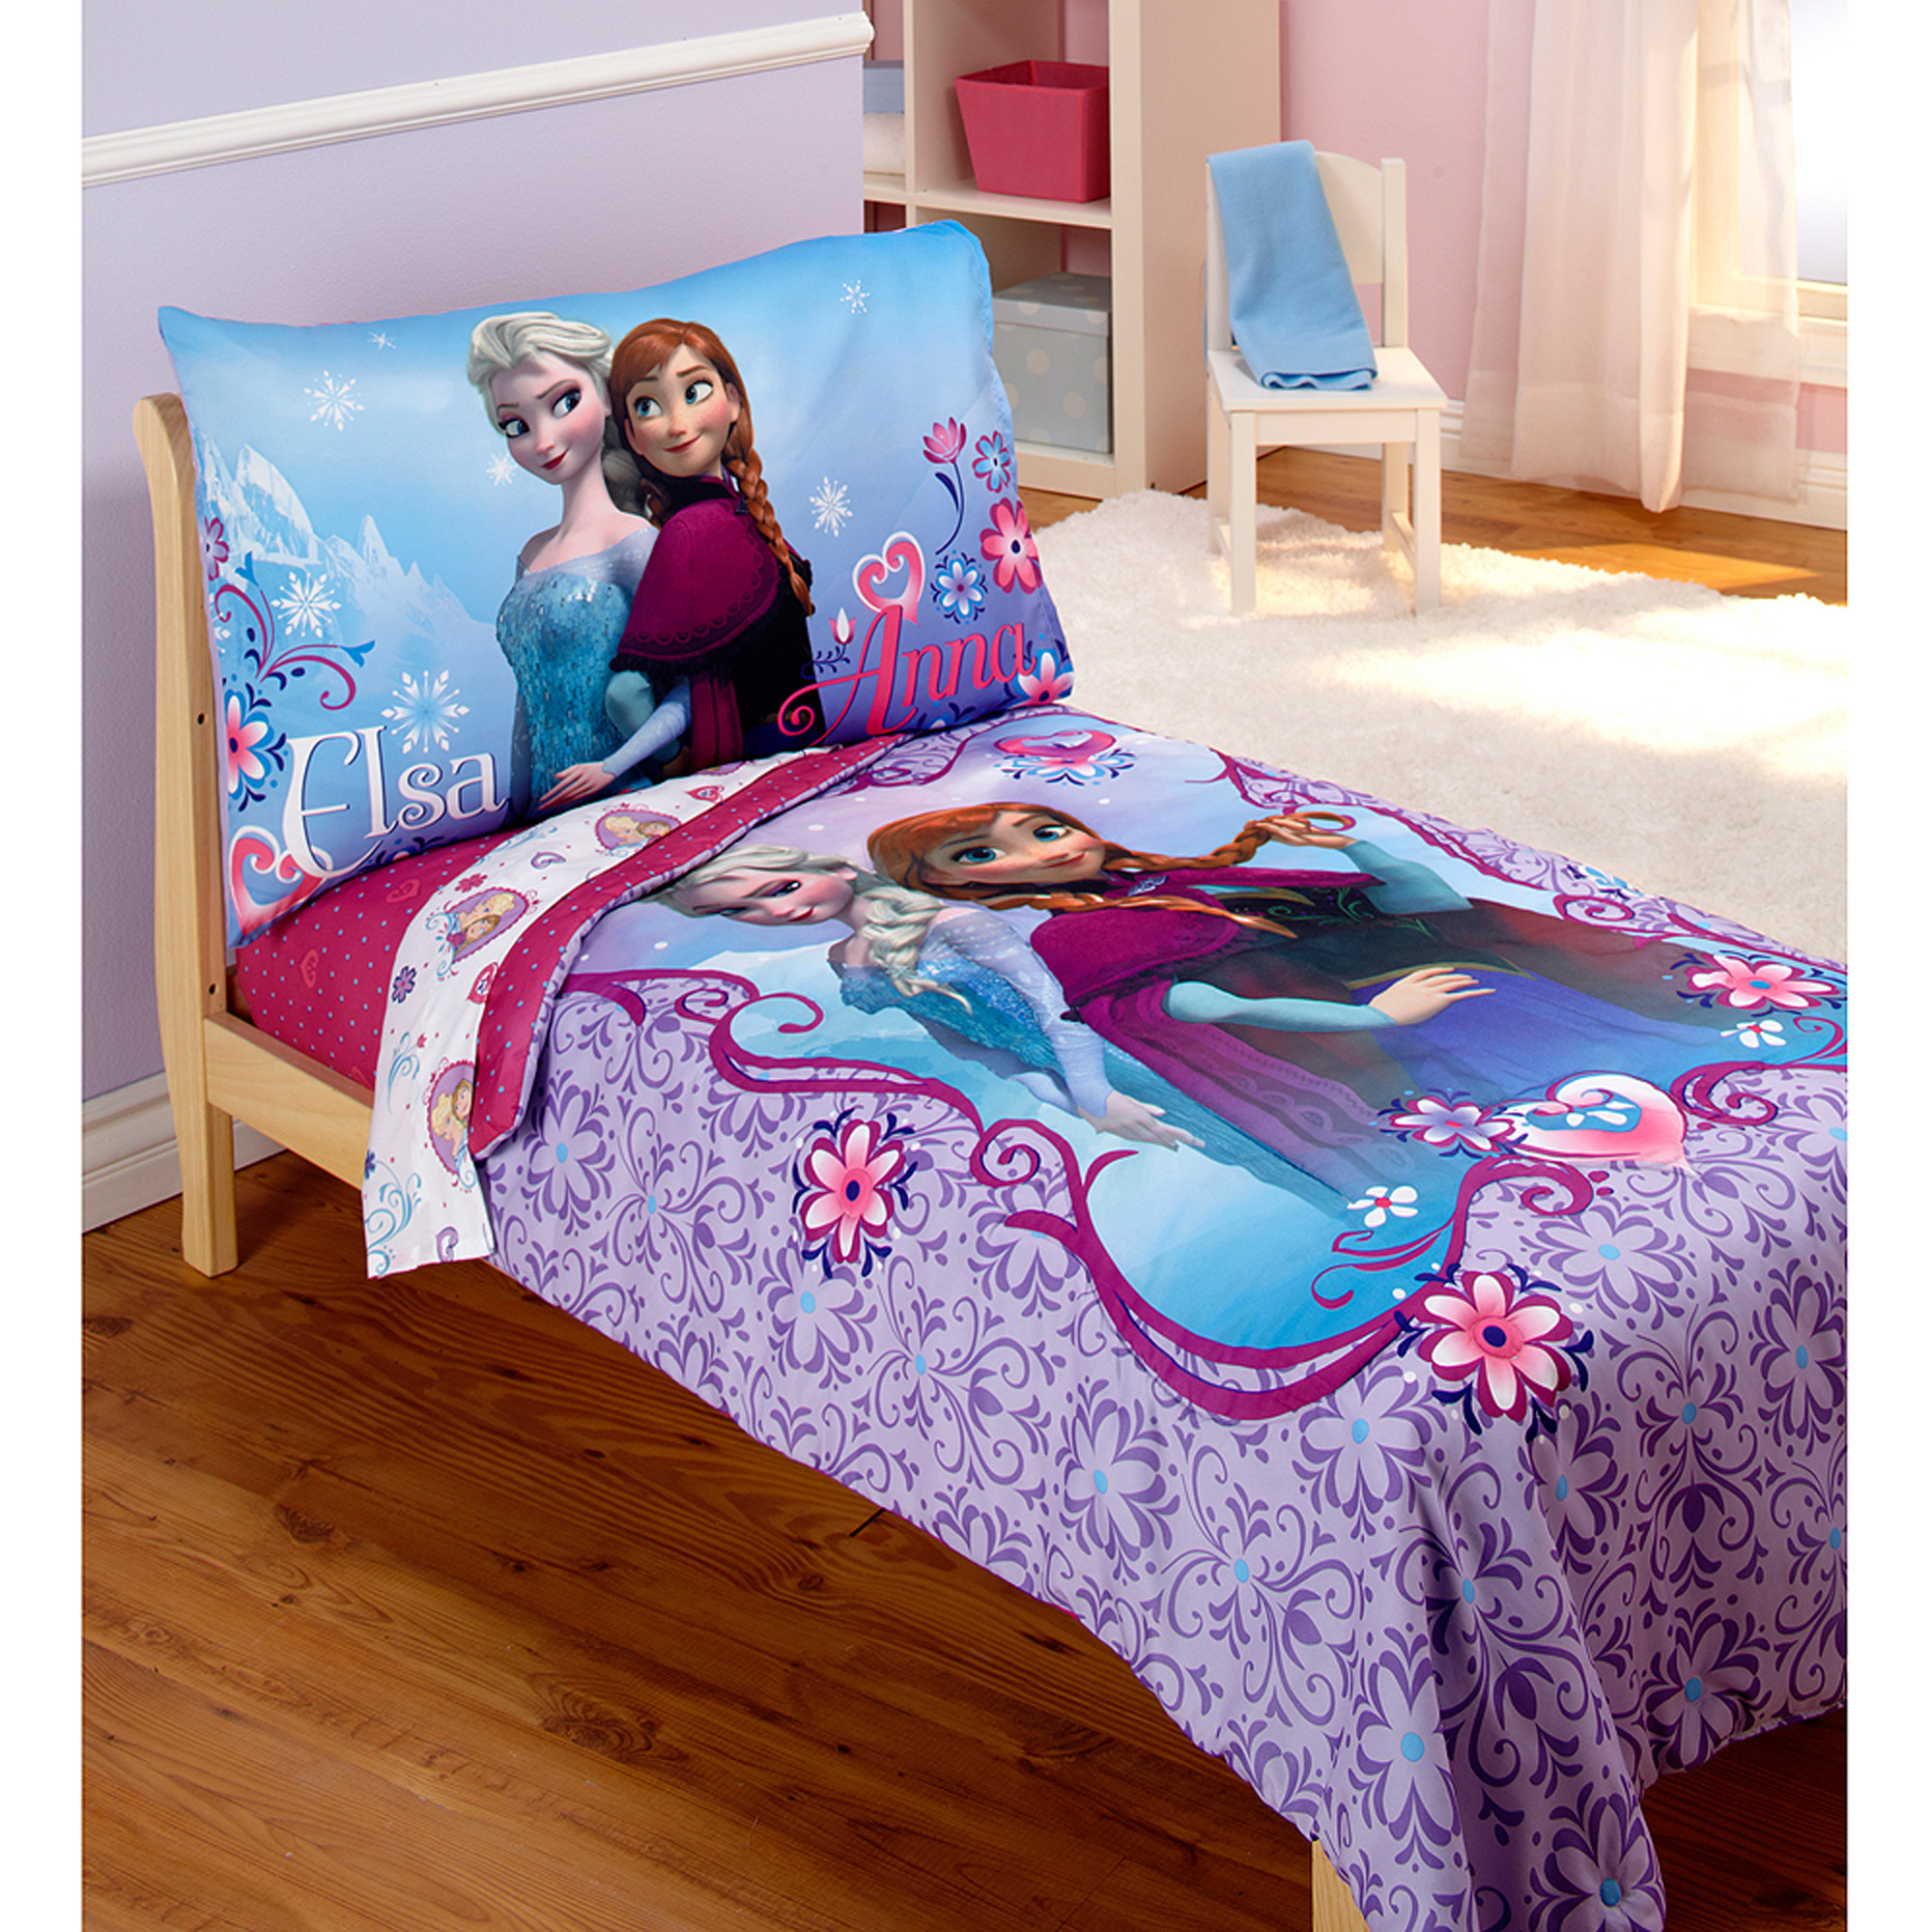 Disney Frozen Elsa & Anna 4pc Toddler Bedding Set